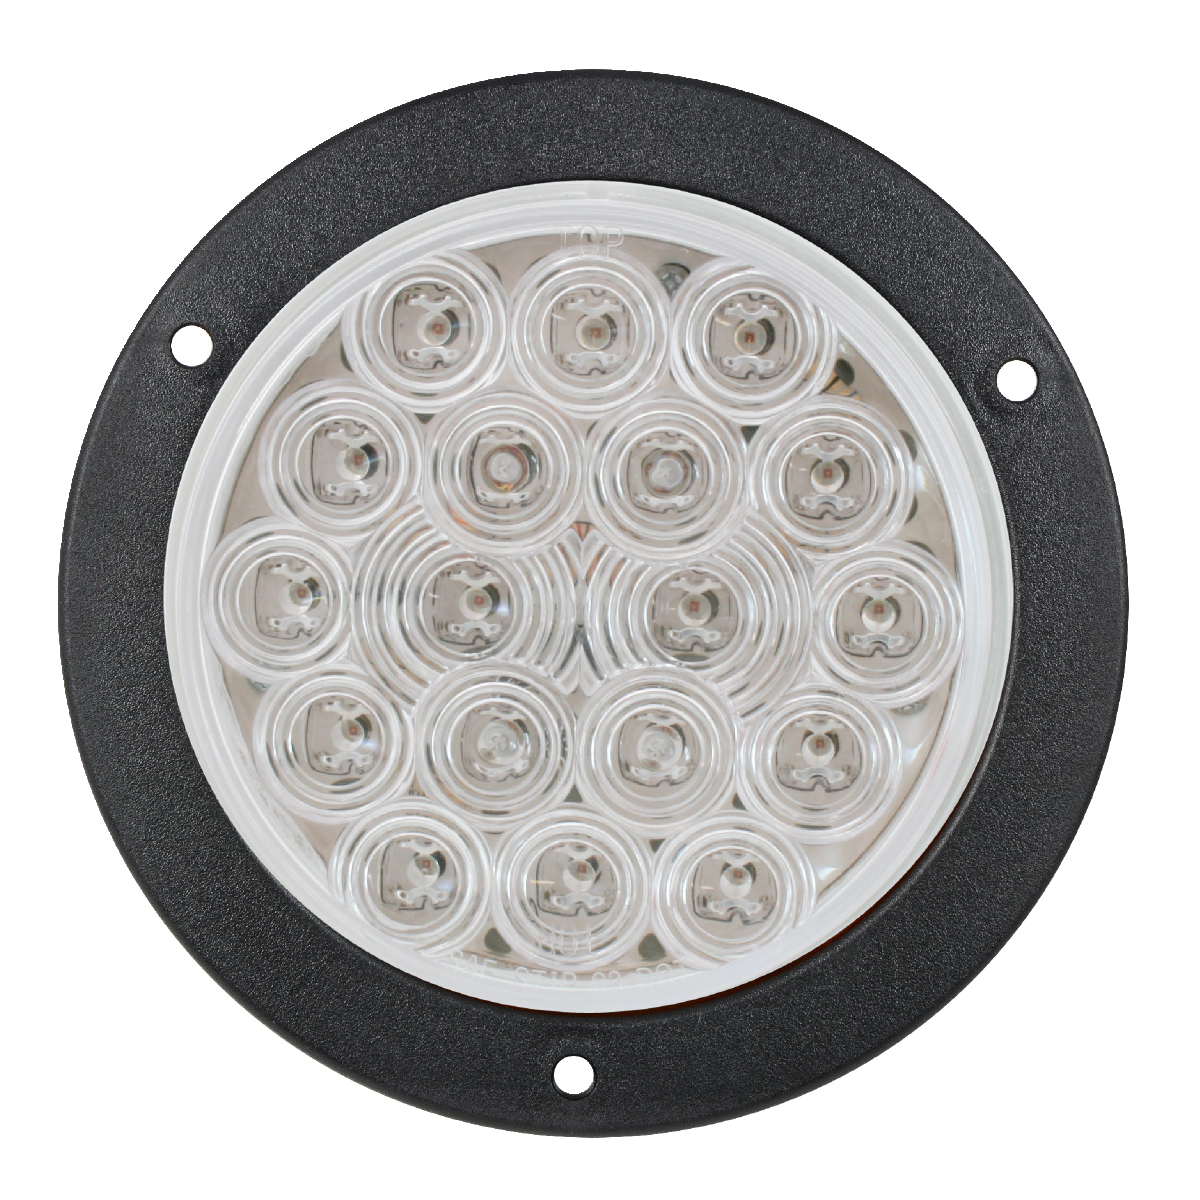 "4"" Fleet LED Light with Black Flange Mount in 3 Wires in Clear Lens"